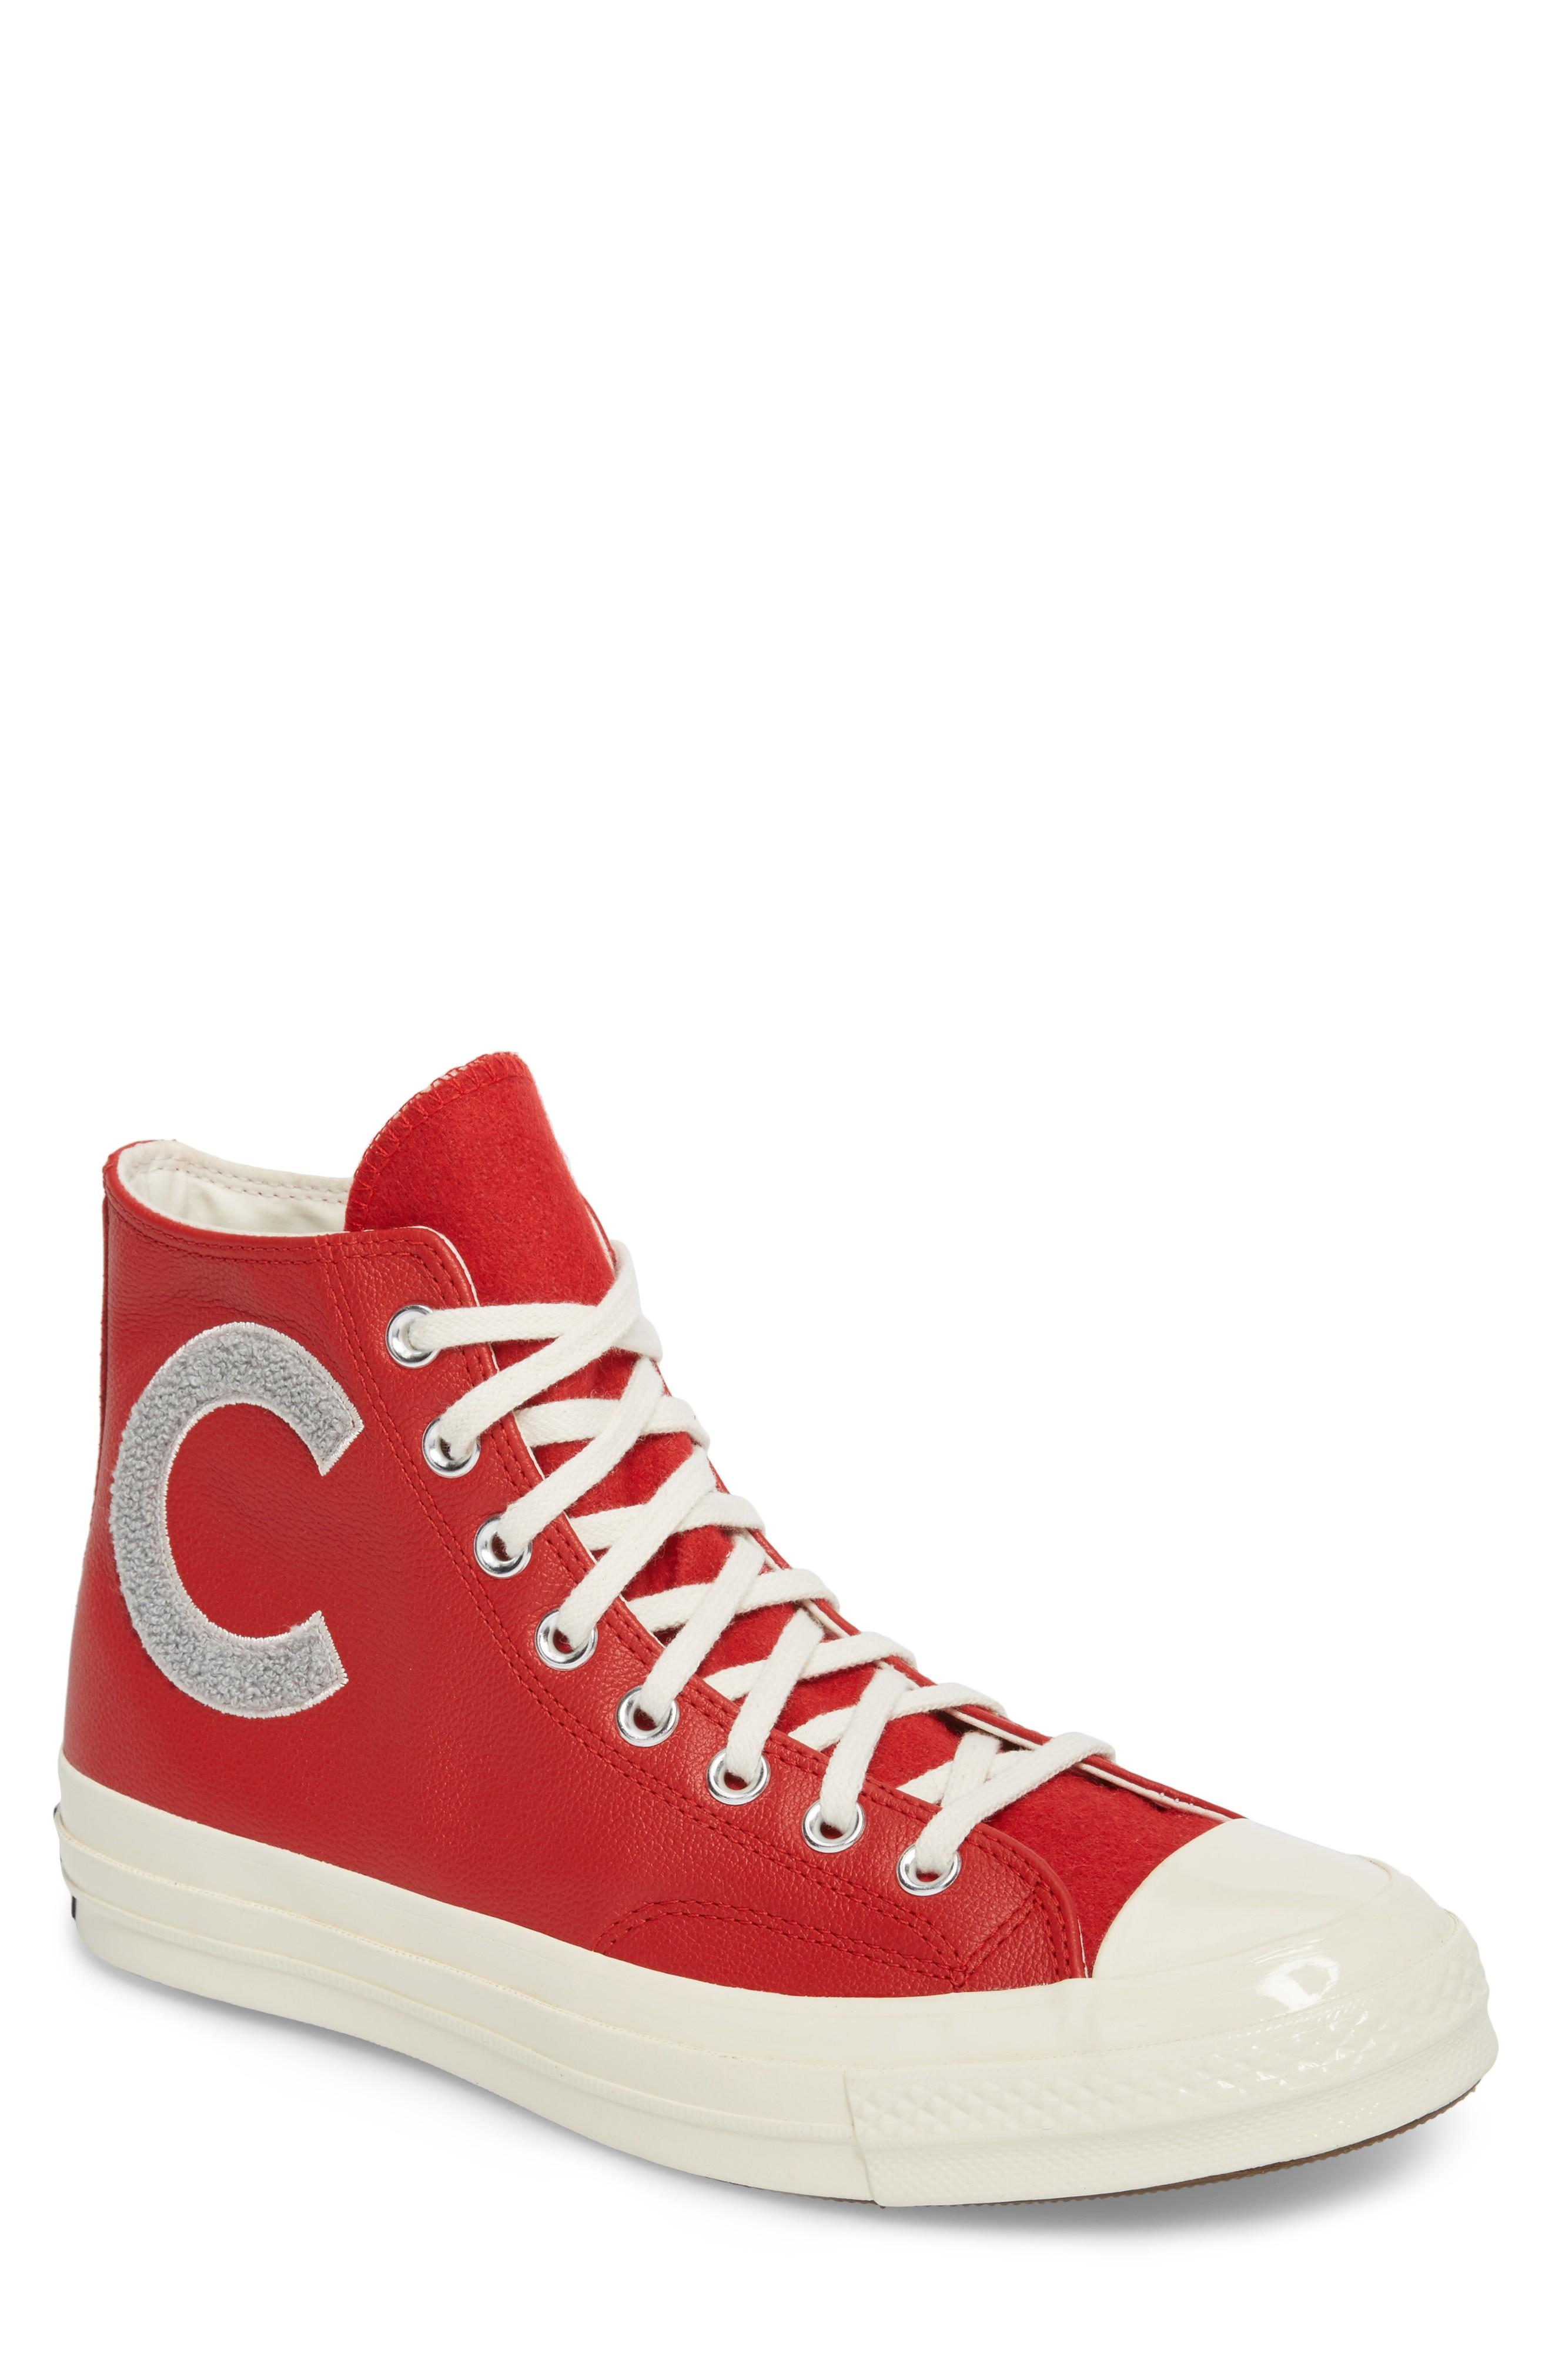 4c9fa70eb8a ... and felted wool and finished with a cushioned insole for superior  comfort. Style Name  Converse Chuck Taylor All Star Wordmark High Top  Sneaker (Men).